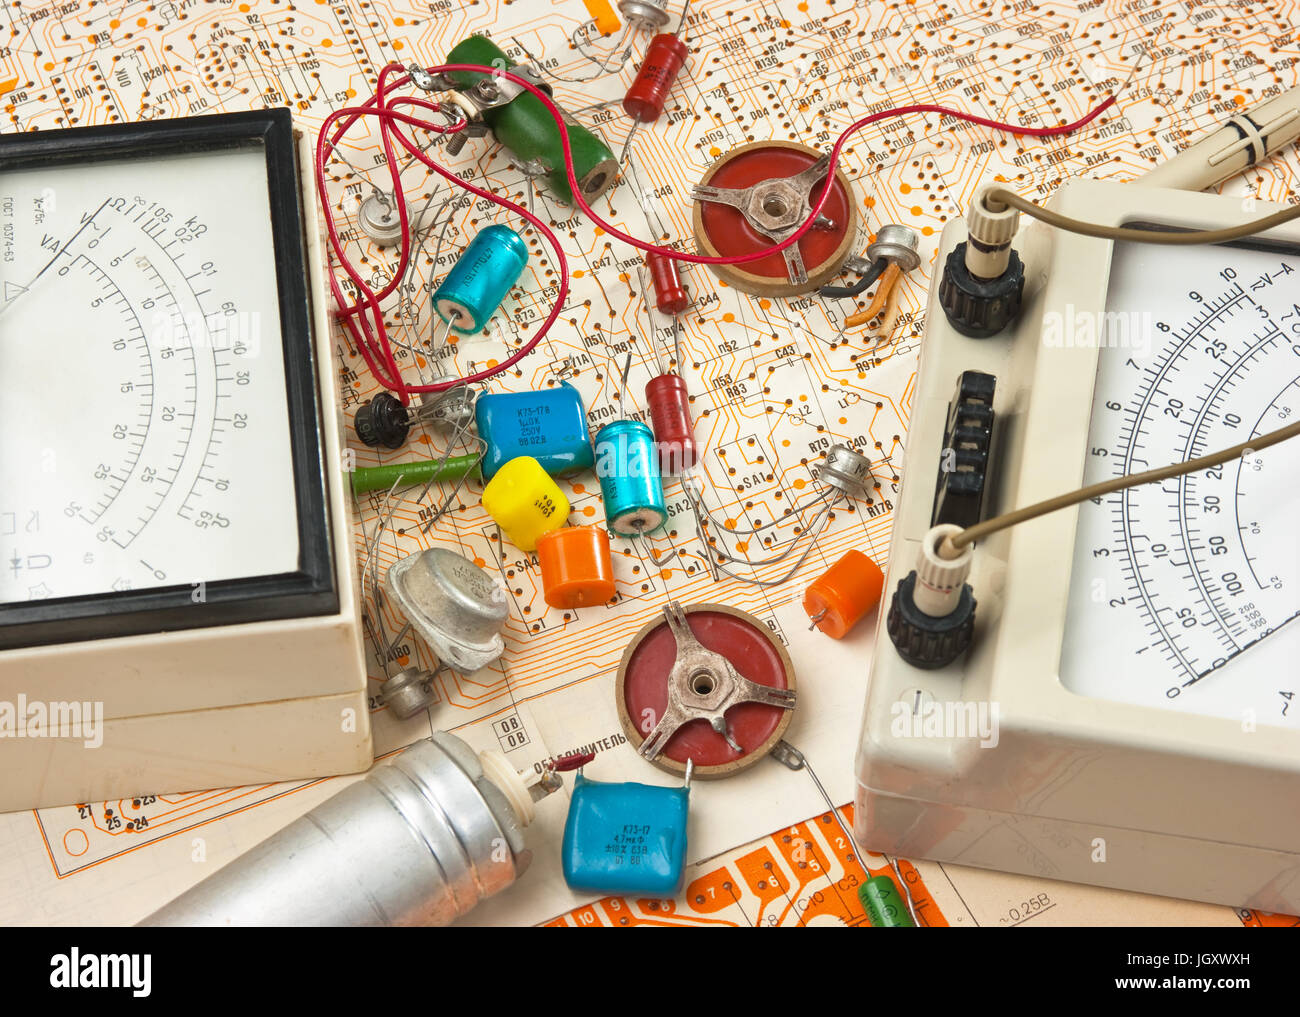 Wiring Diagram Stock Photos Images Alamy Learning Diagrams Old Electronic Components Lie On The Image